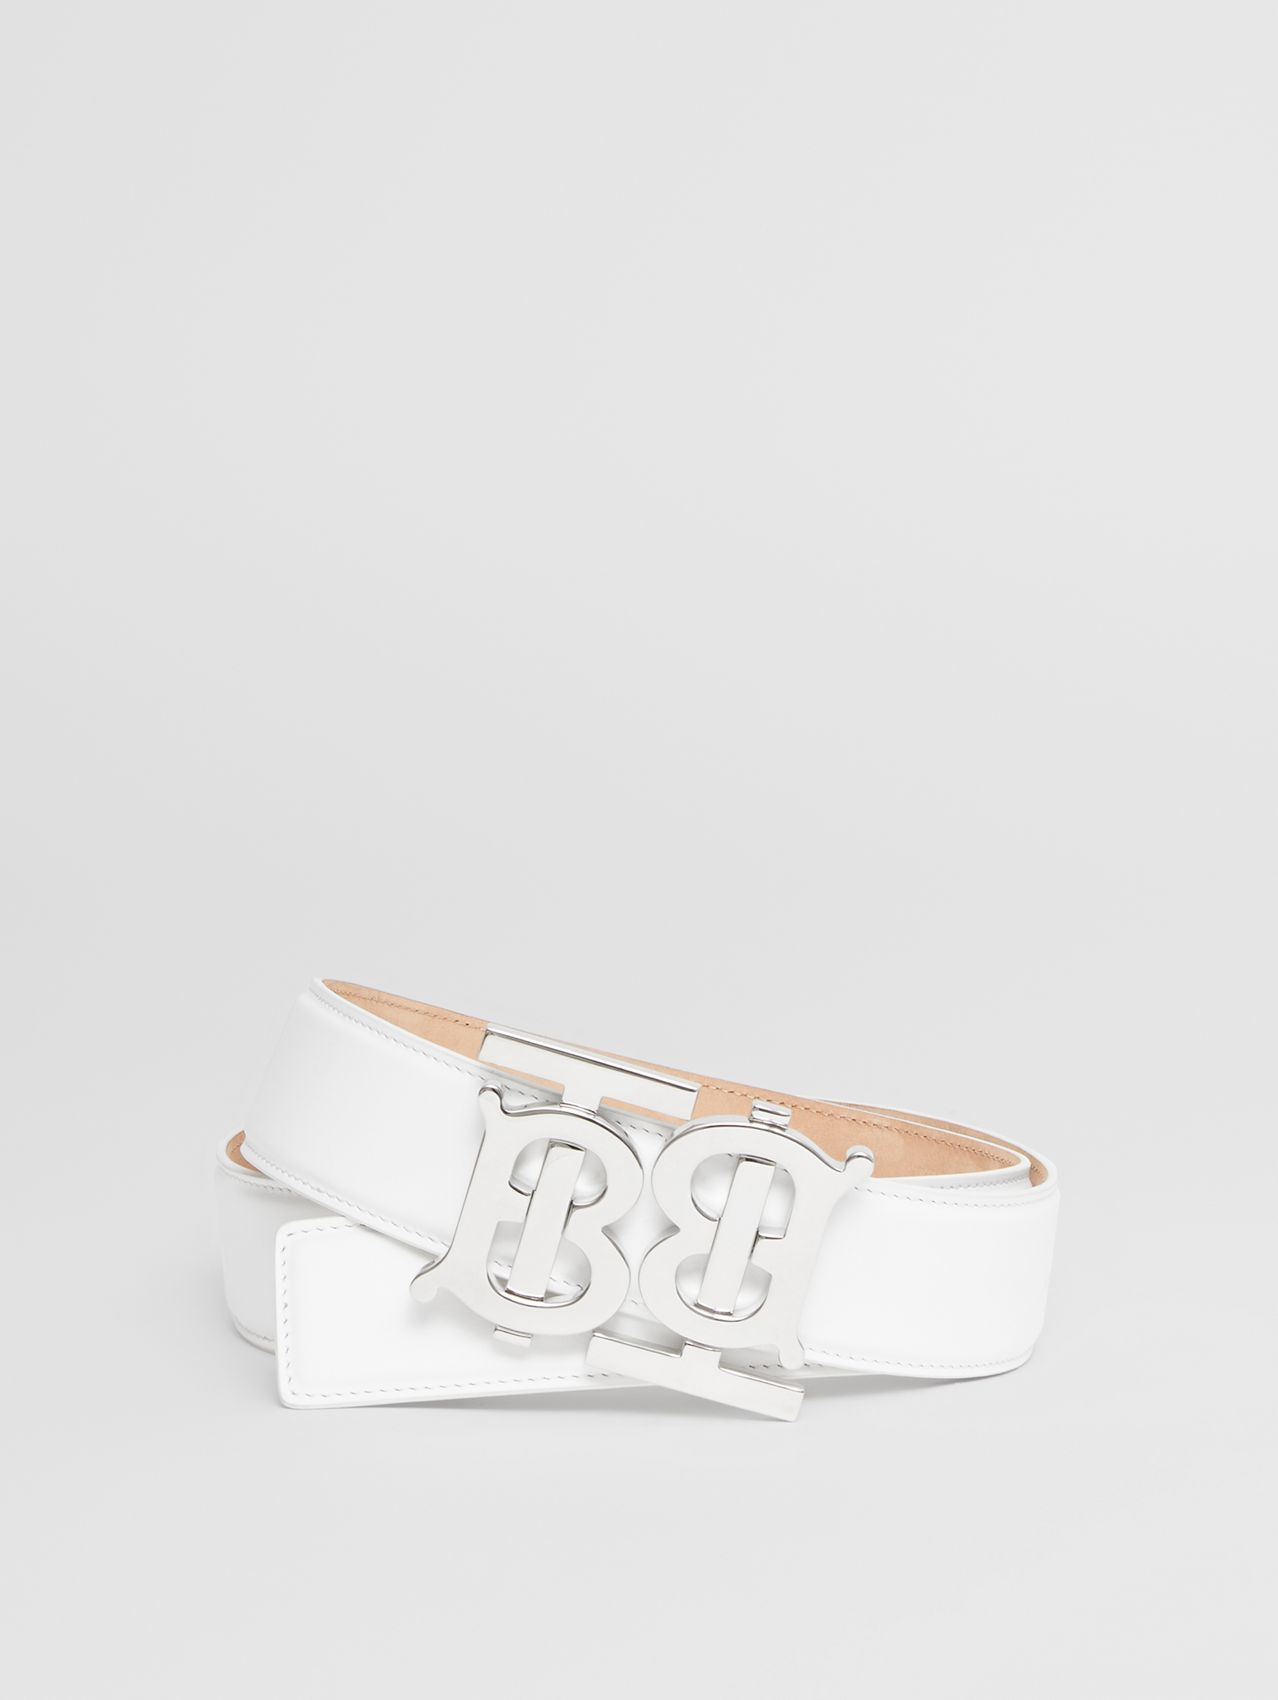 Double Monogram Motif Leather Belt in Optic White